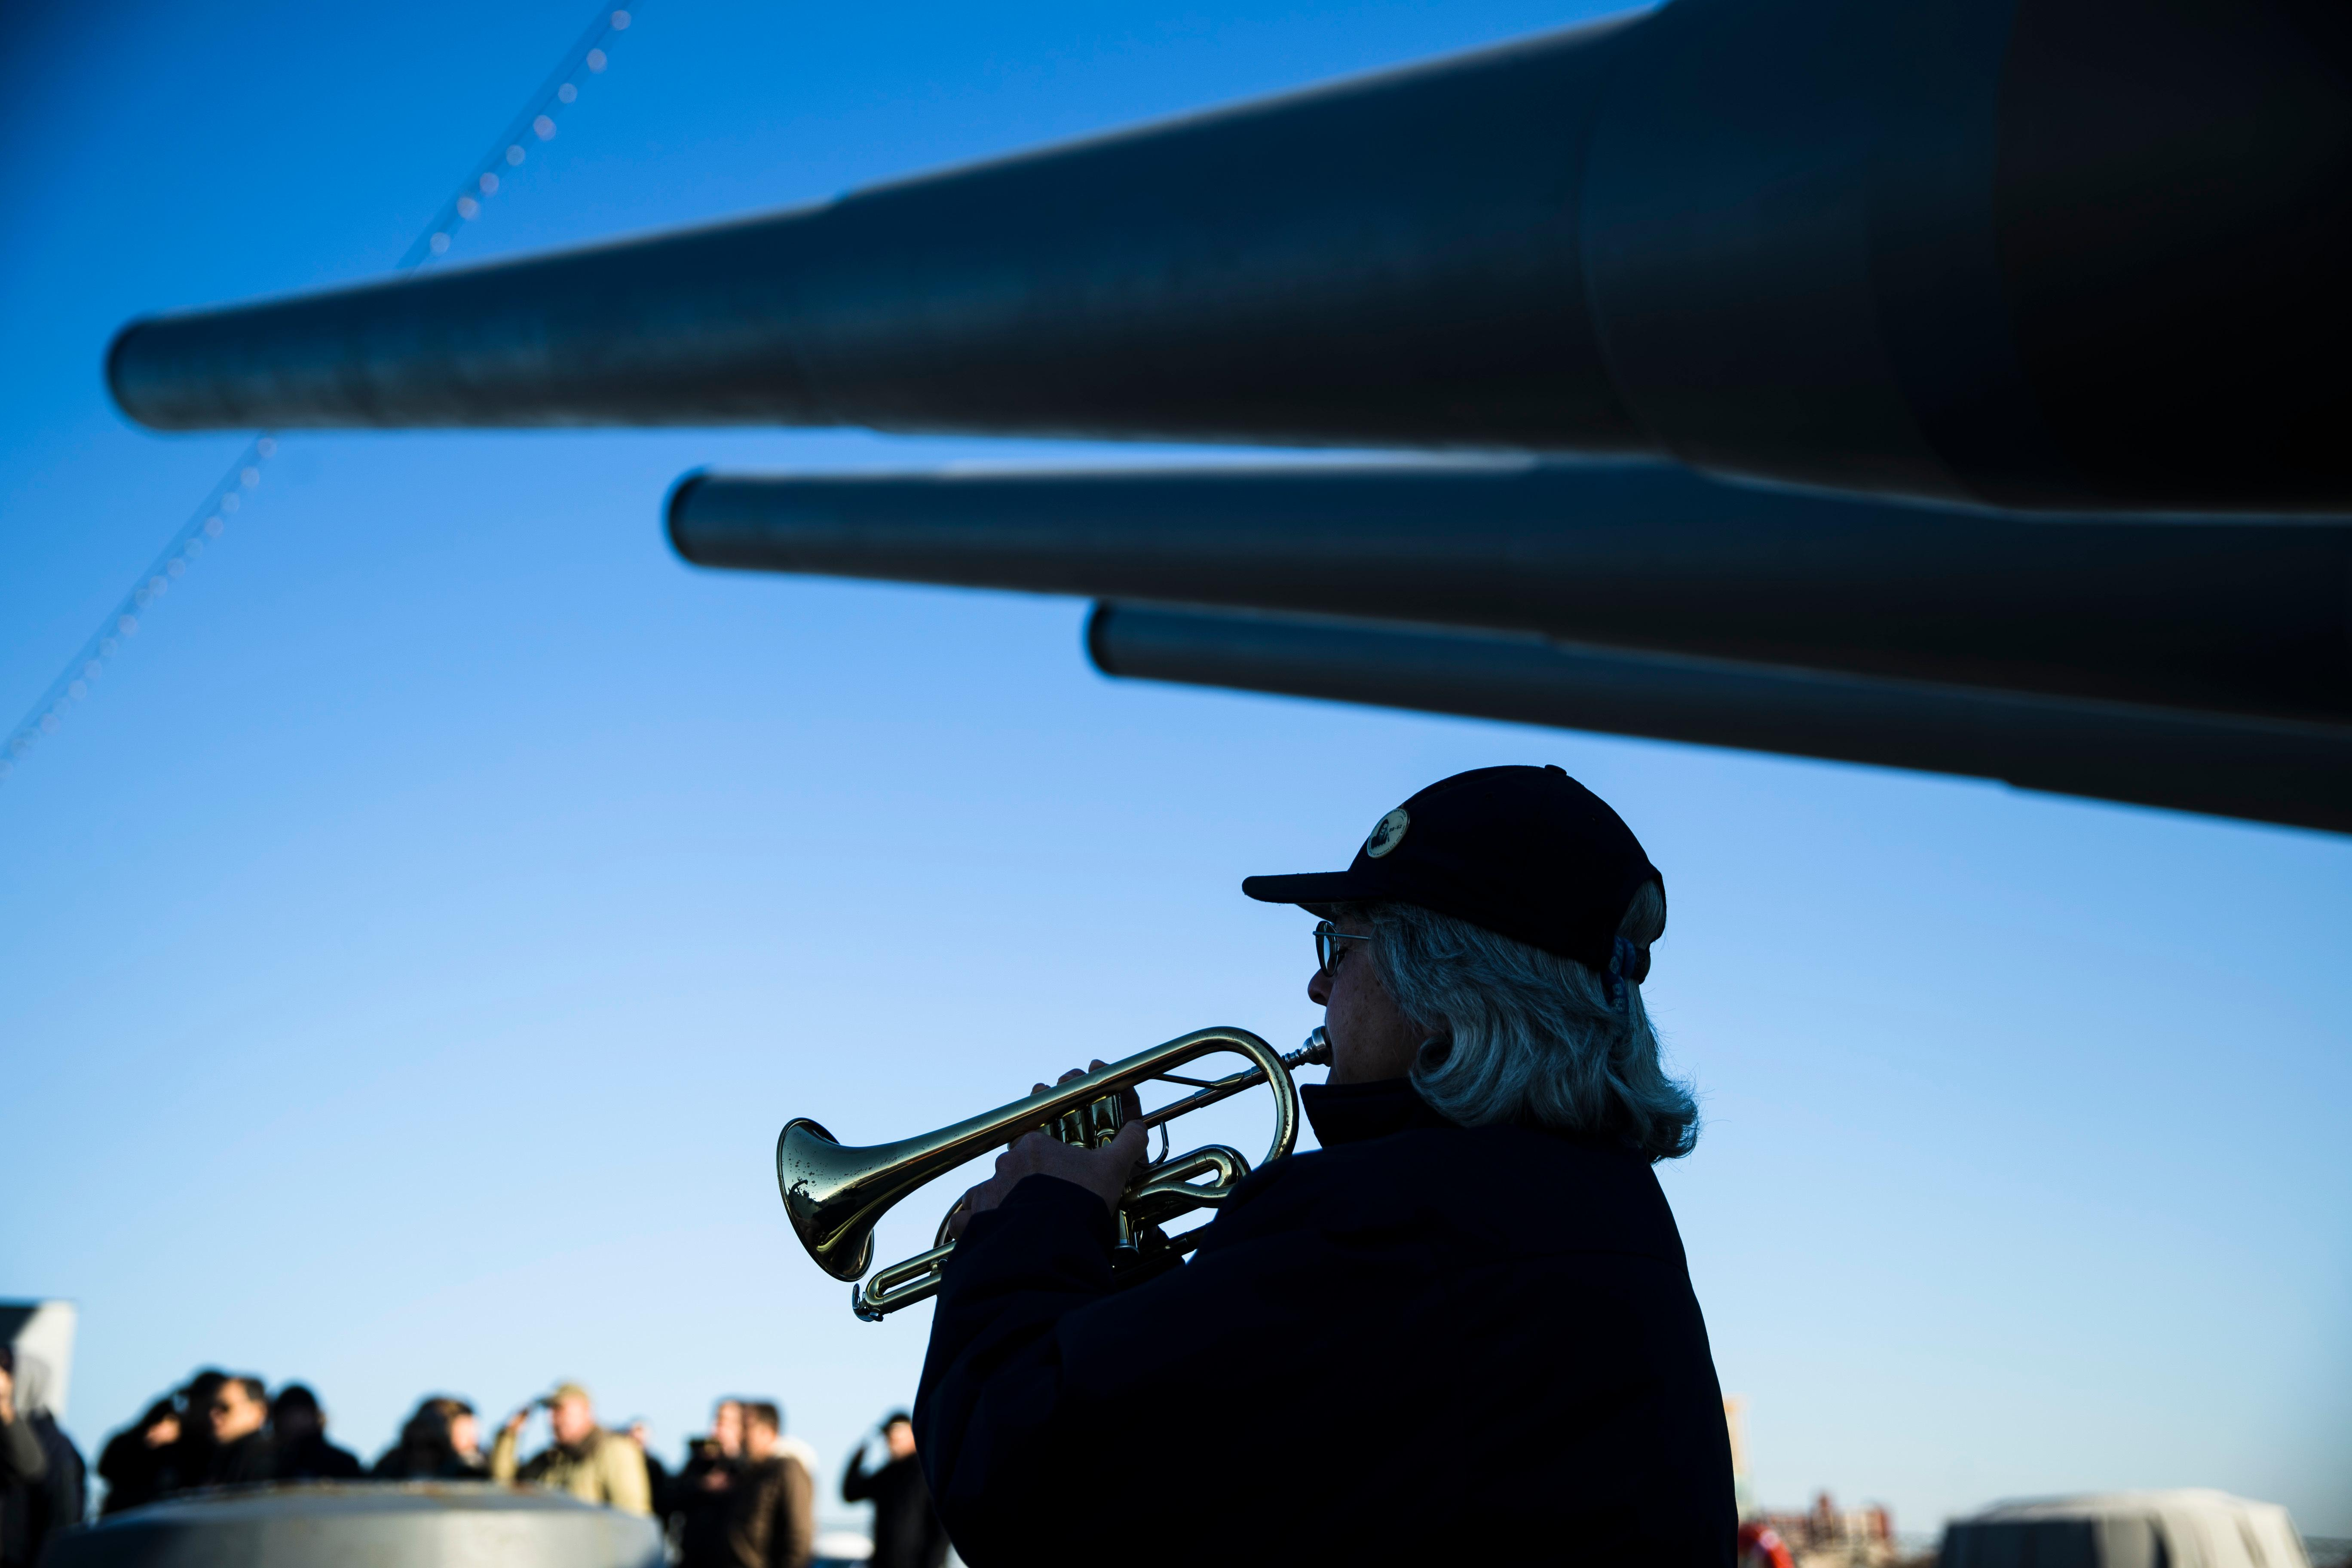 Bugler Nan LaCorte play taps during a ceremony commemorating the anniversary of the Dec. 7, 1941 Japanese attack on Pearl Harbor, on board The Battleship New Jersey Museum and Memorial in Camden, N.J., Thursday, Dec. 7, 2017. (AP Photo/Matt Rourke)